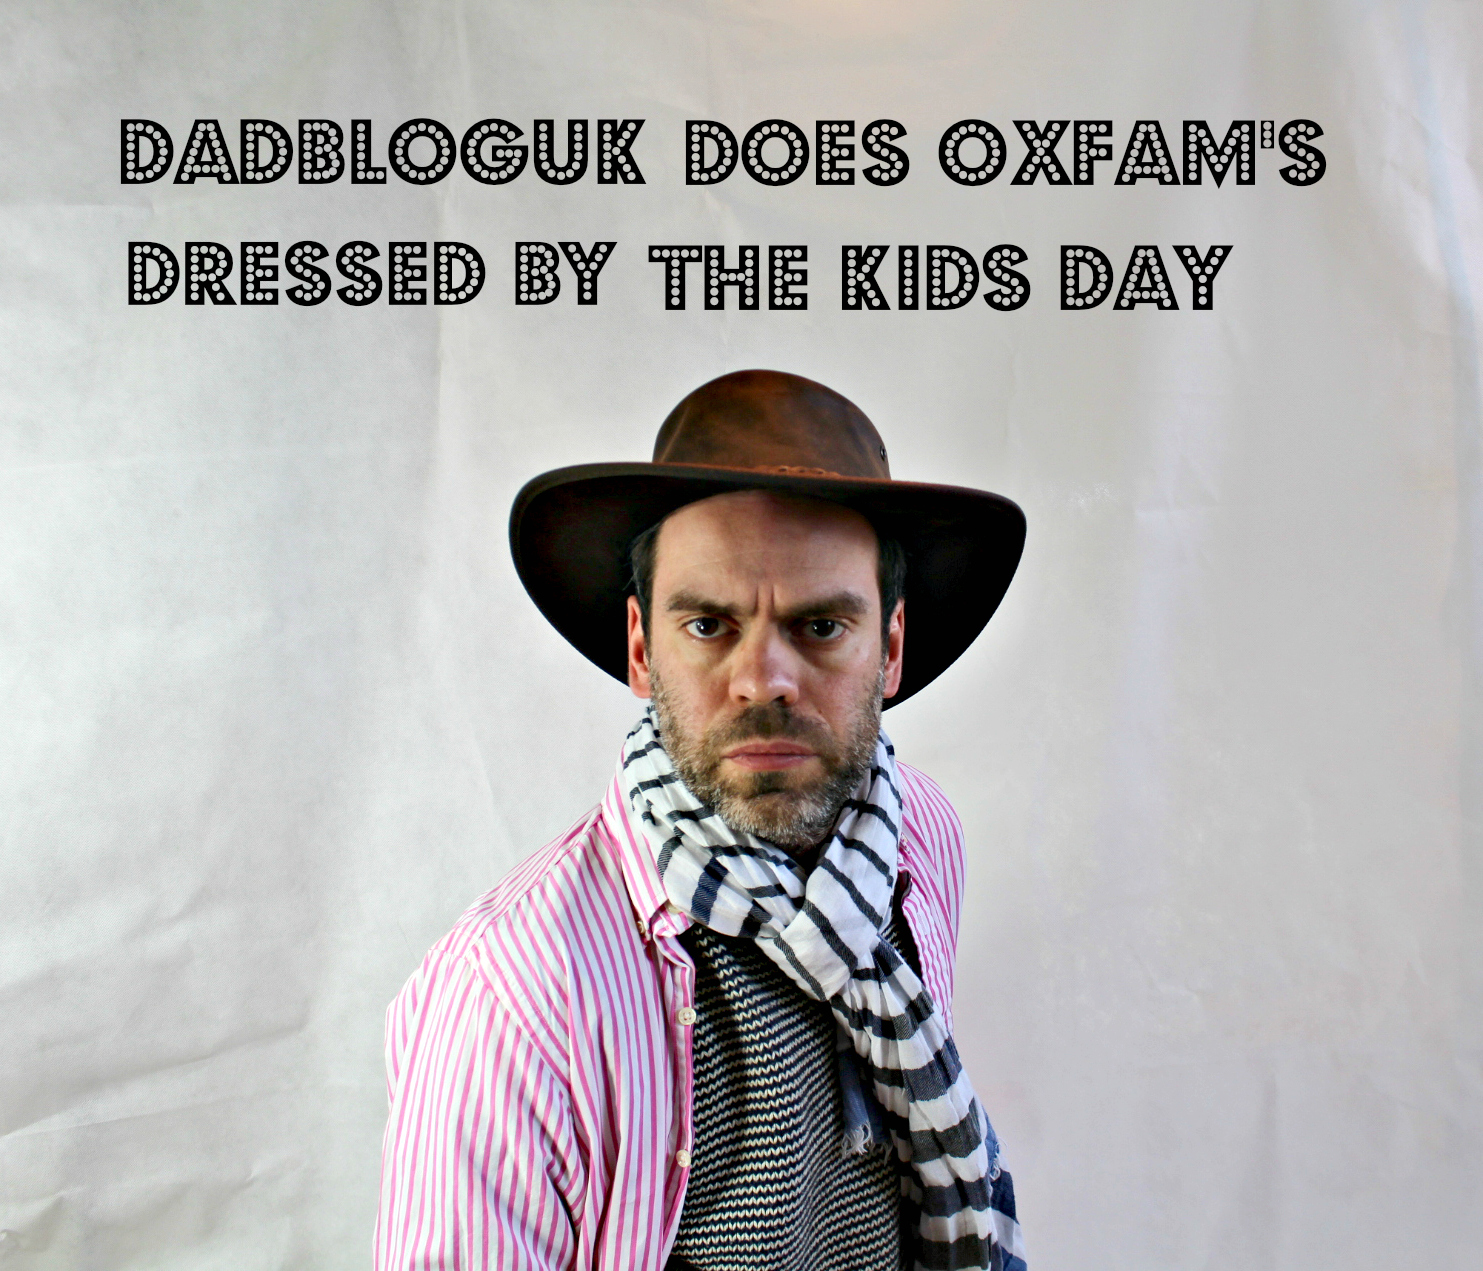 Dressed by the Kids Day is finally here!